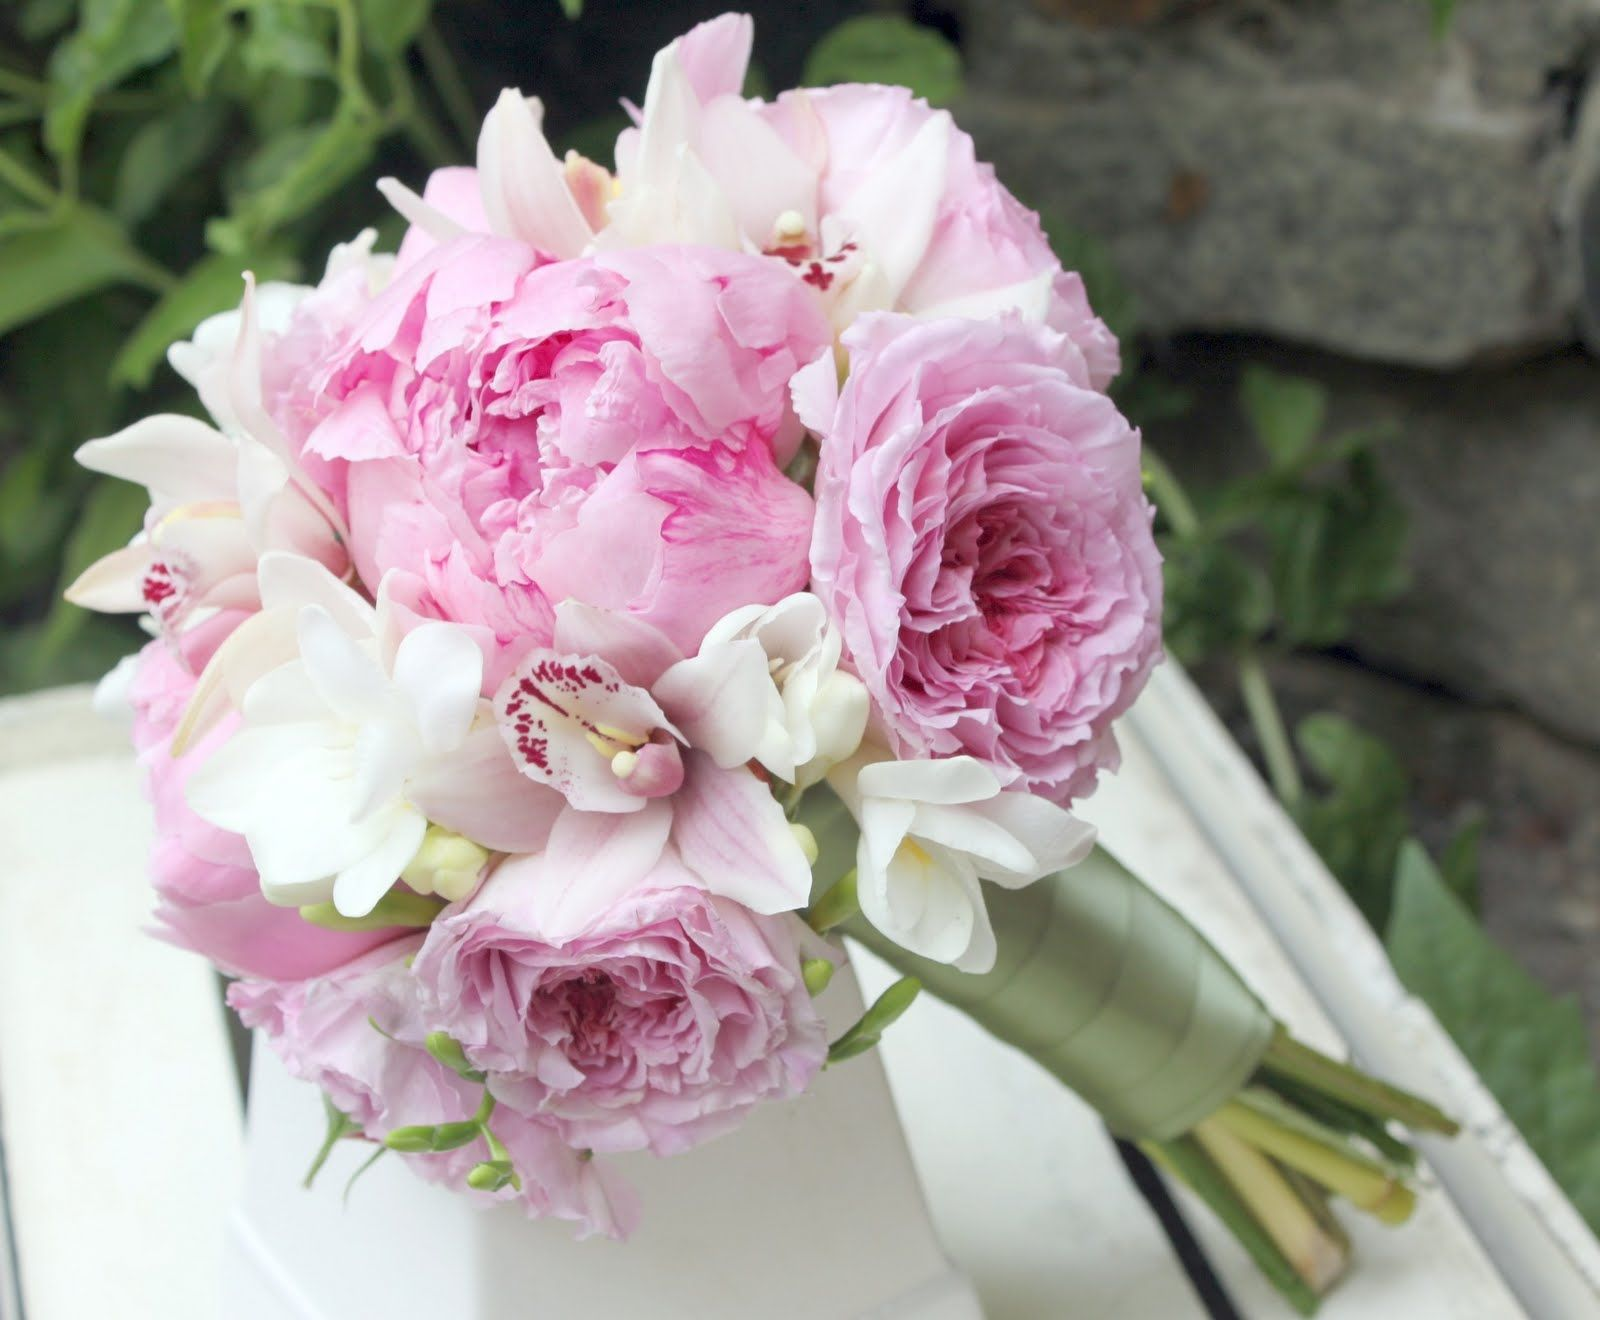 Garden Rose And Peony david austen garden roses, pink peonies, white freesia and mini